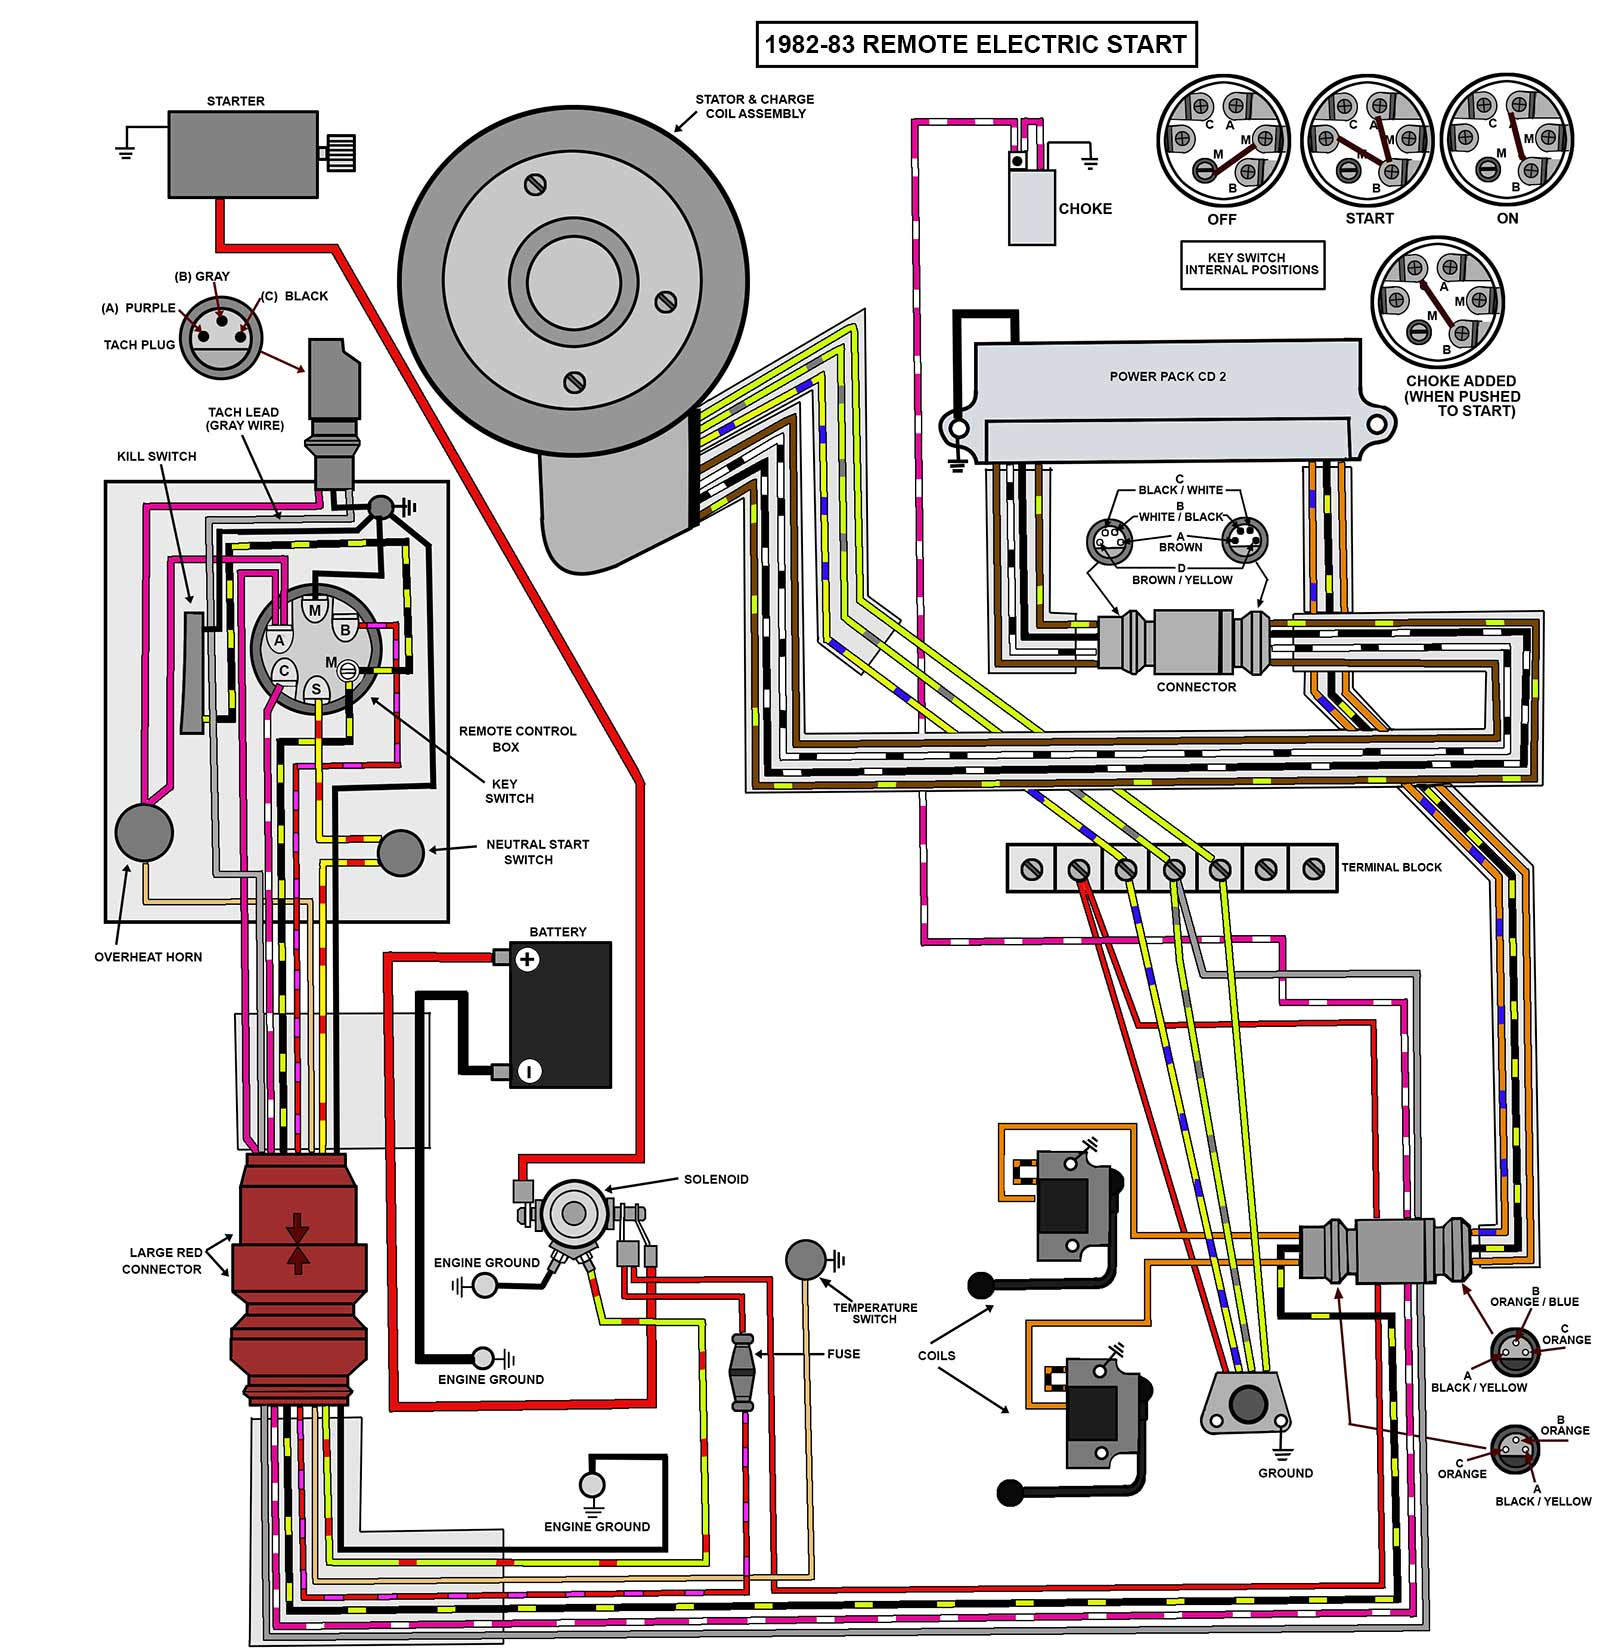 25_35_82 83_elec remote hp wiring diagram wiring harness diagram \u2022 wiring diagrams j  at reclaimingppi.co